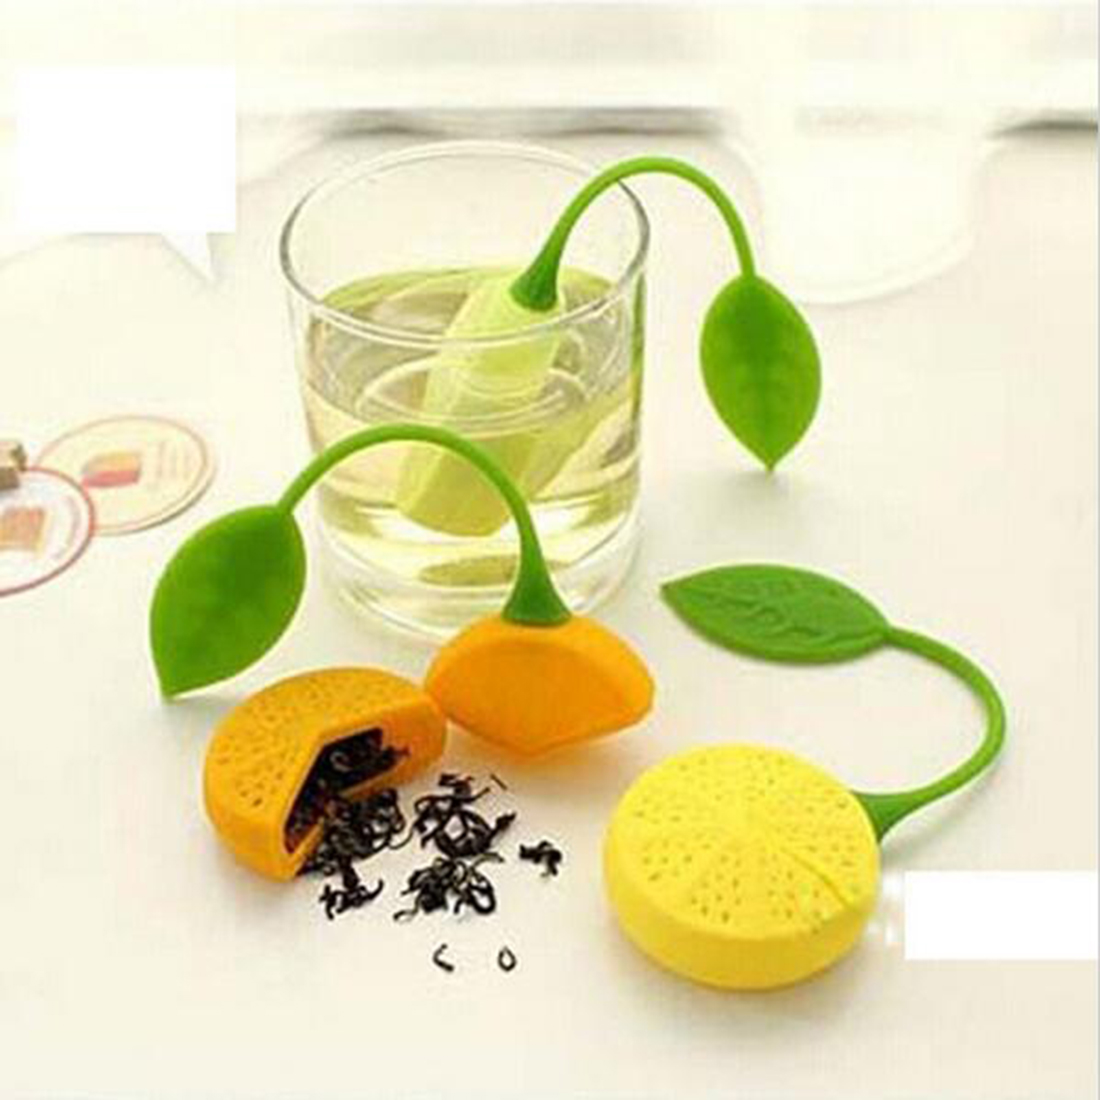 1Pc  Tea Strainer Silicone Strawberry Lemon Design Loose Tea Leaf Strainer Bag Herbal Spice Infuser Filter Tool Random Color